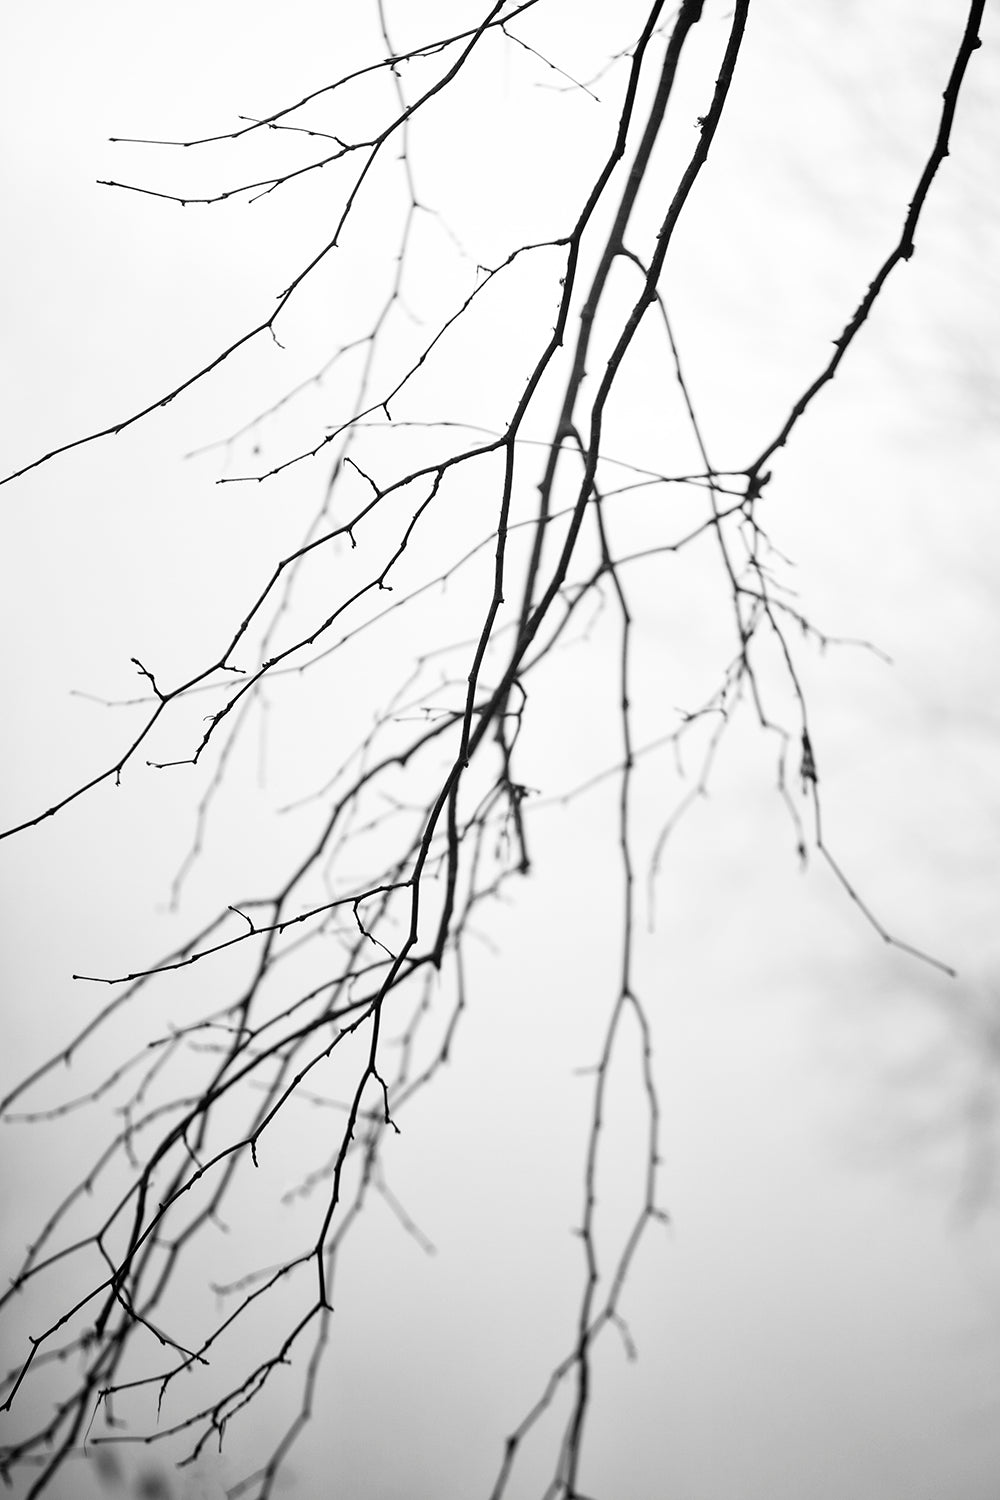 Barren Winter Branches - Black and White Landscape Photograph by Keith Dotson. Buy a fine art print.